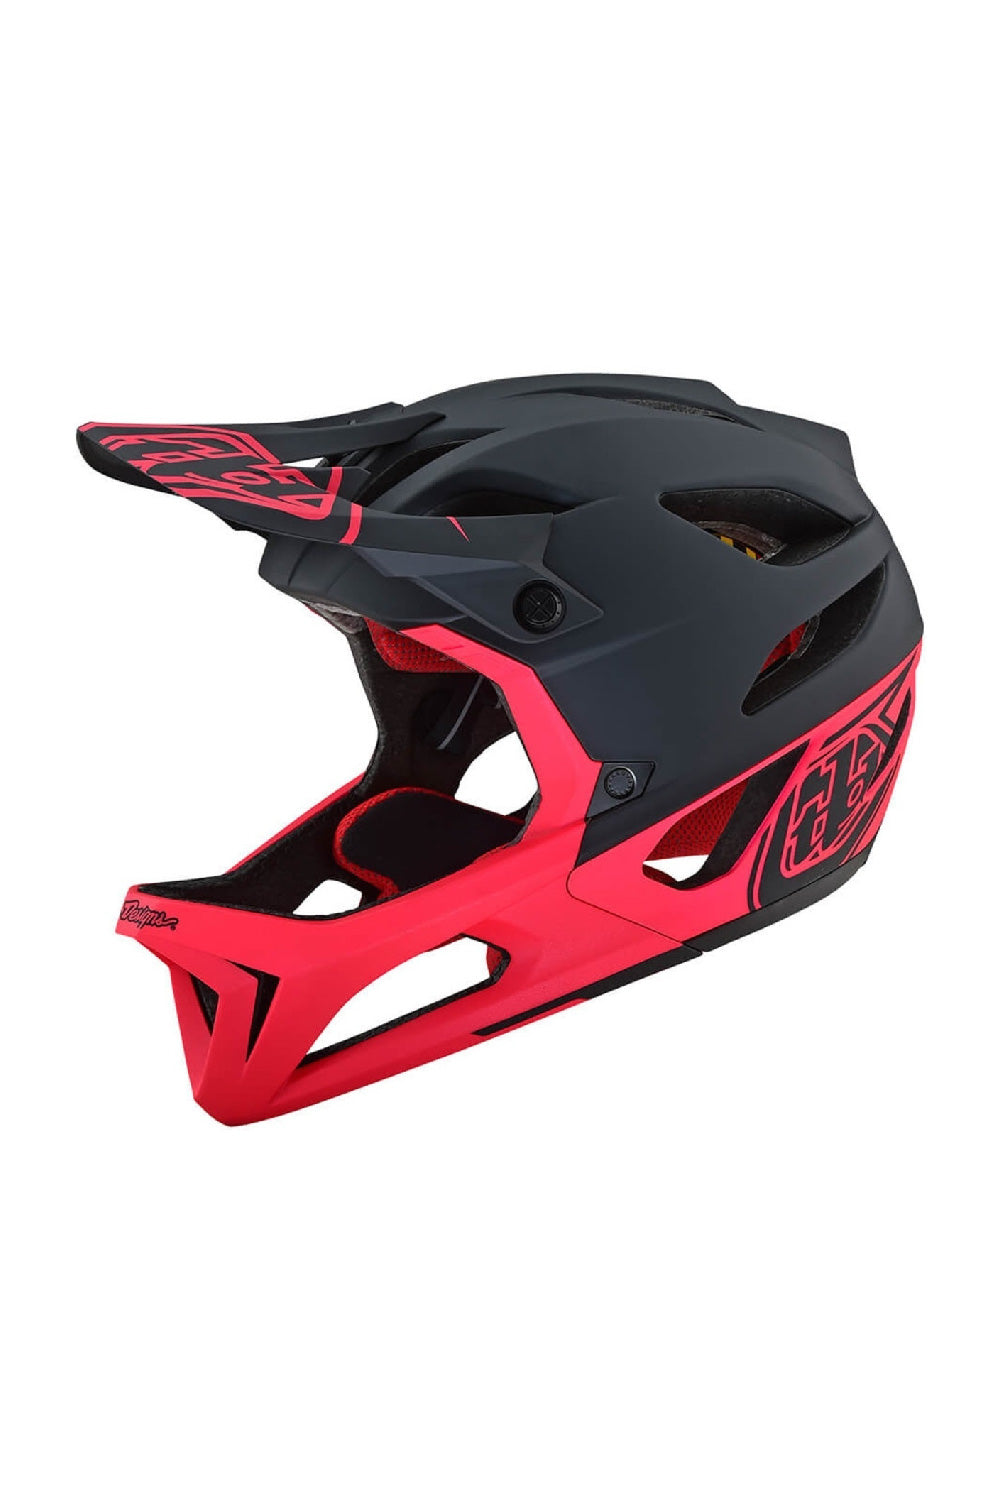 TROY LEE DESIGNS, 19 STAGE STEALTH HELMET MIPS